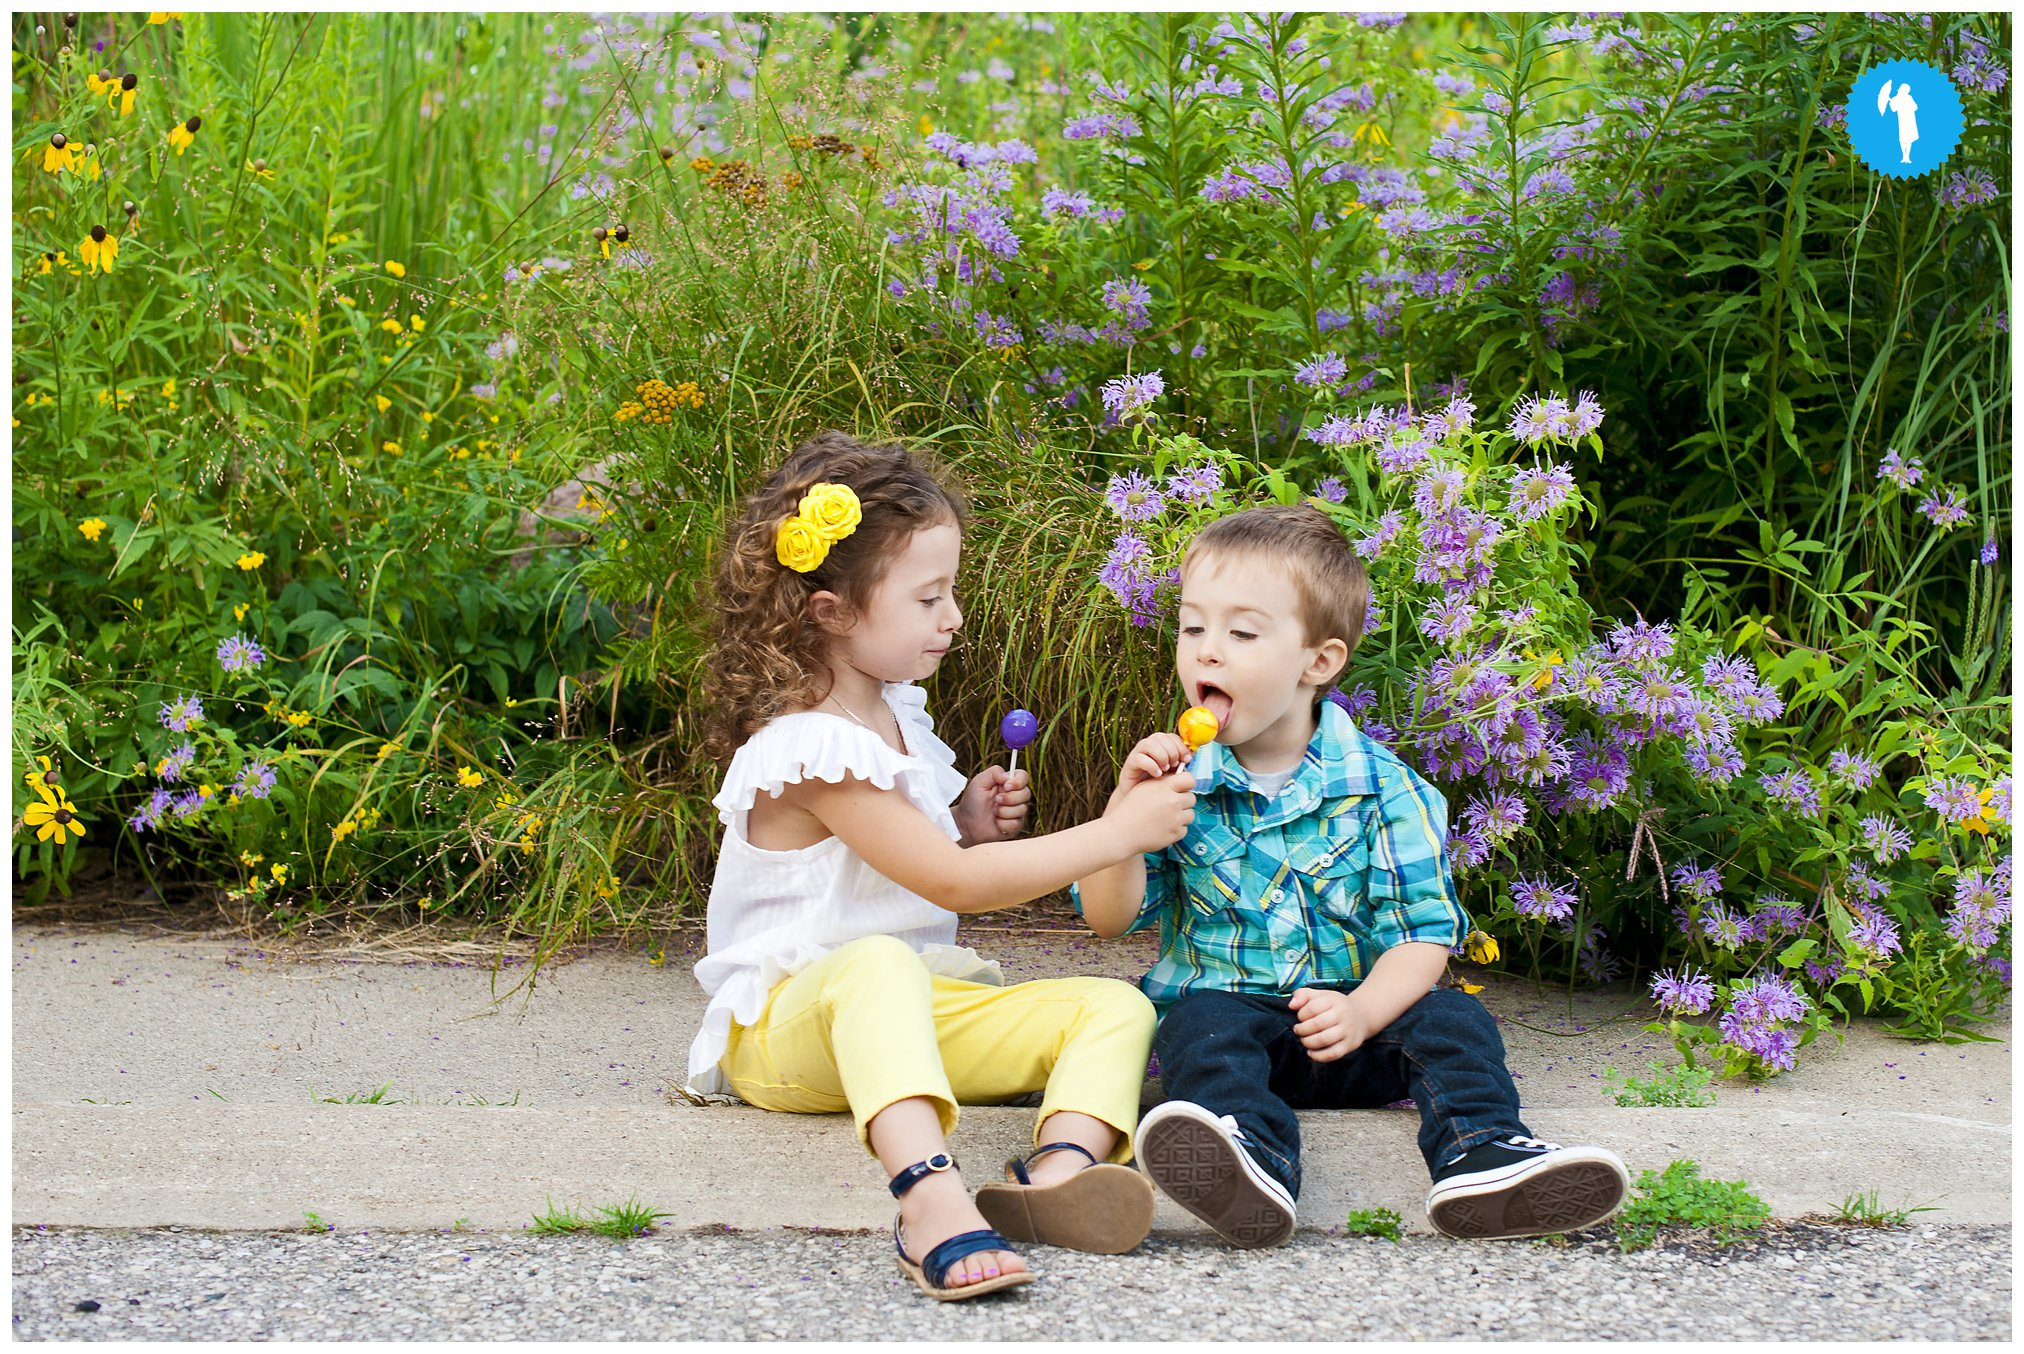 Kid's portraits in Kitchener-Waterloo by Emily Beatty Imagery.